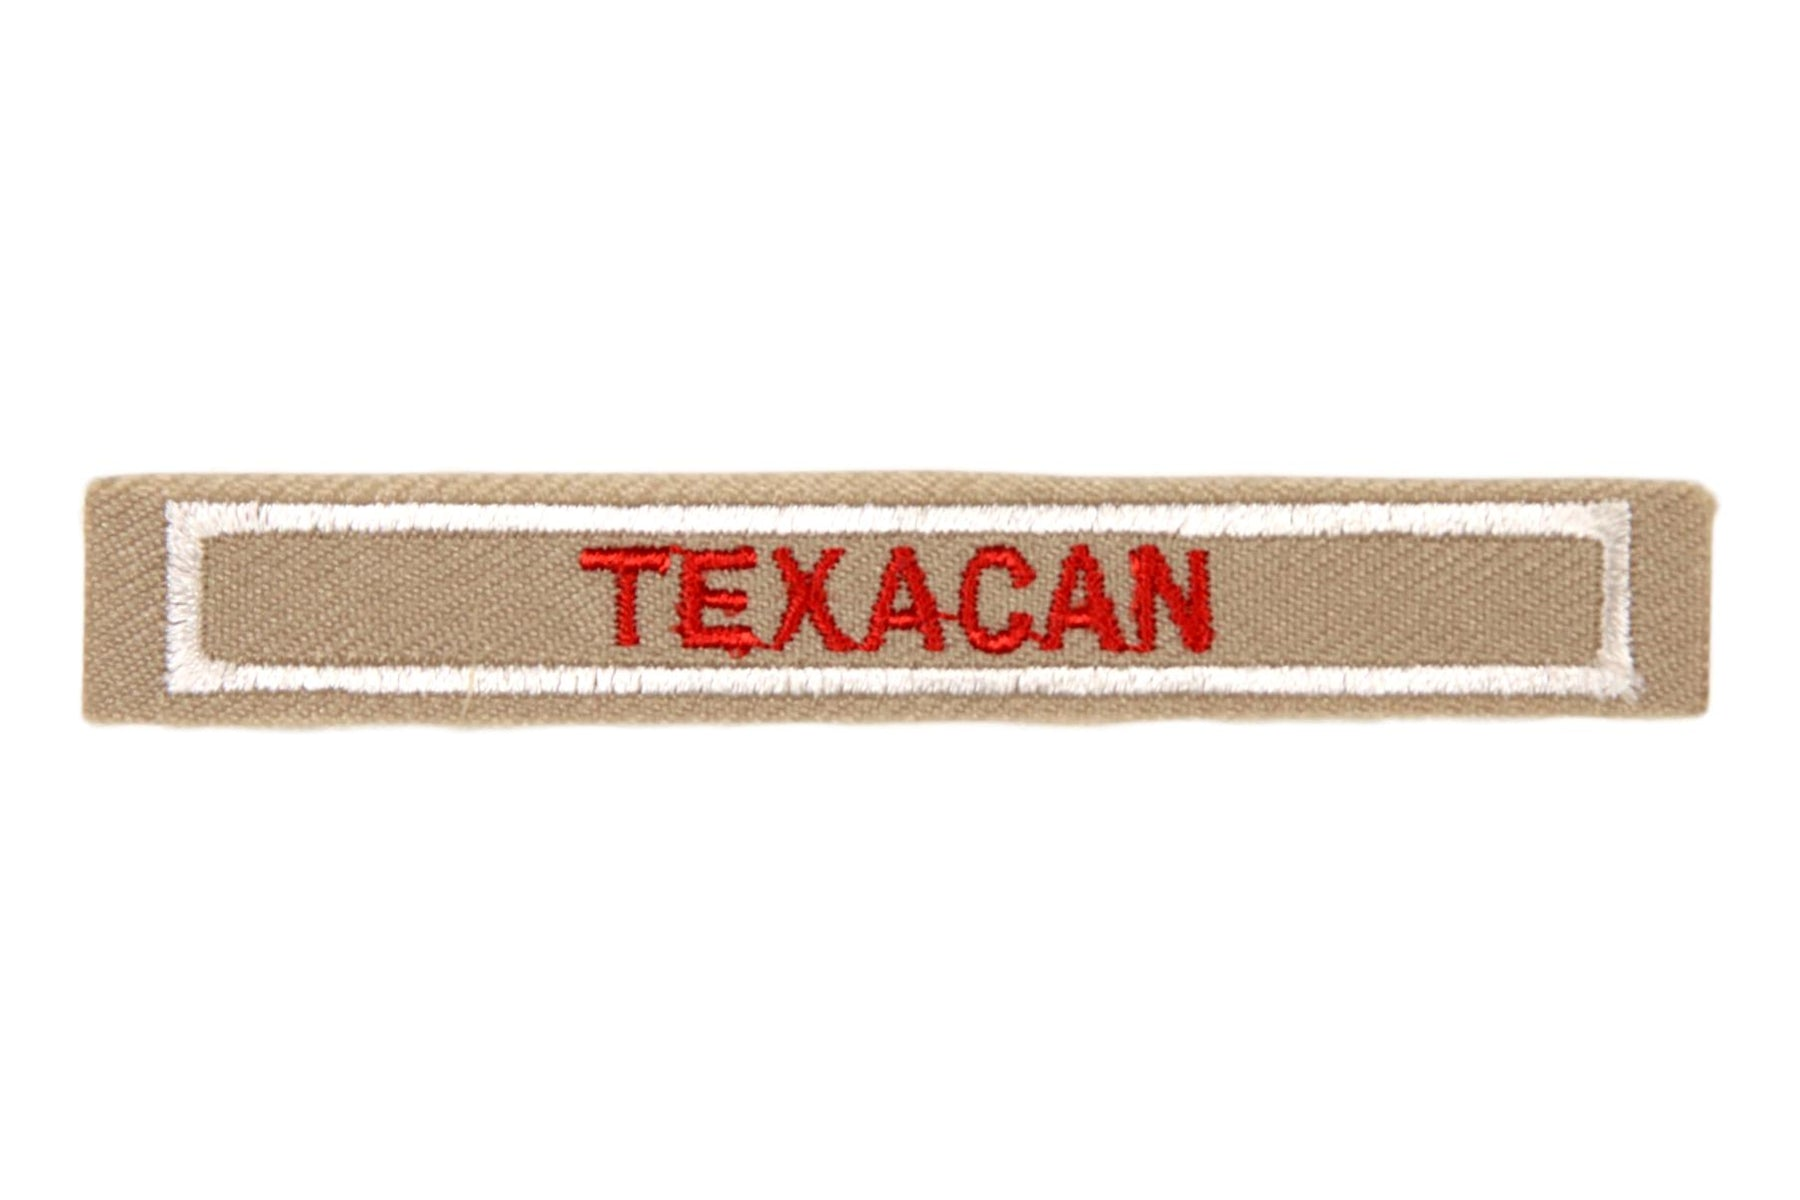 Texacan Interpreter Strip